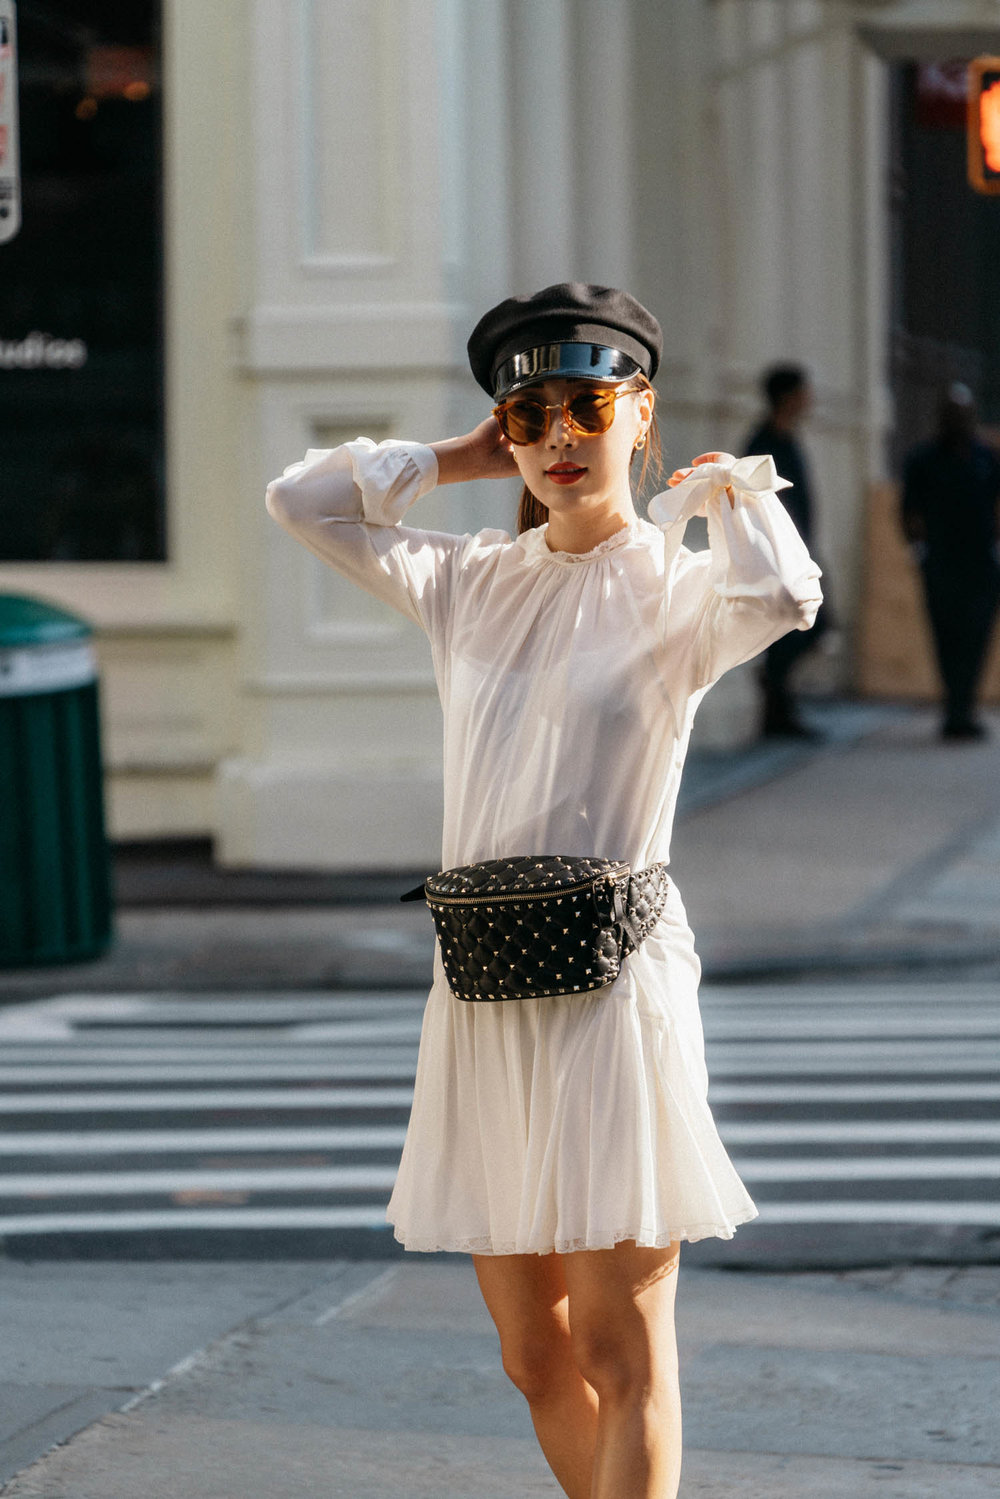 Prada Dress,  Fendi Sn  e  akers ,  Valentino Bag , Gucci Hat,  Céline Sunglasses